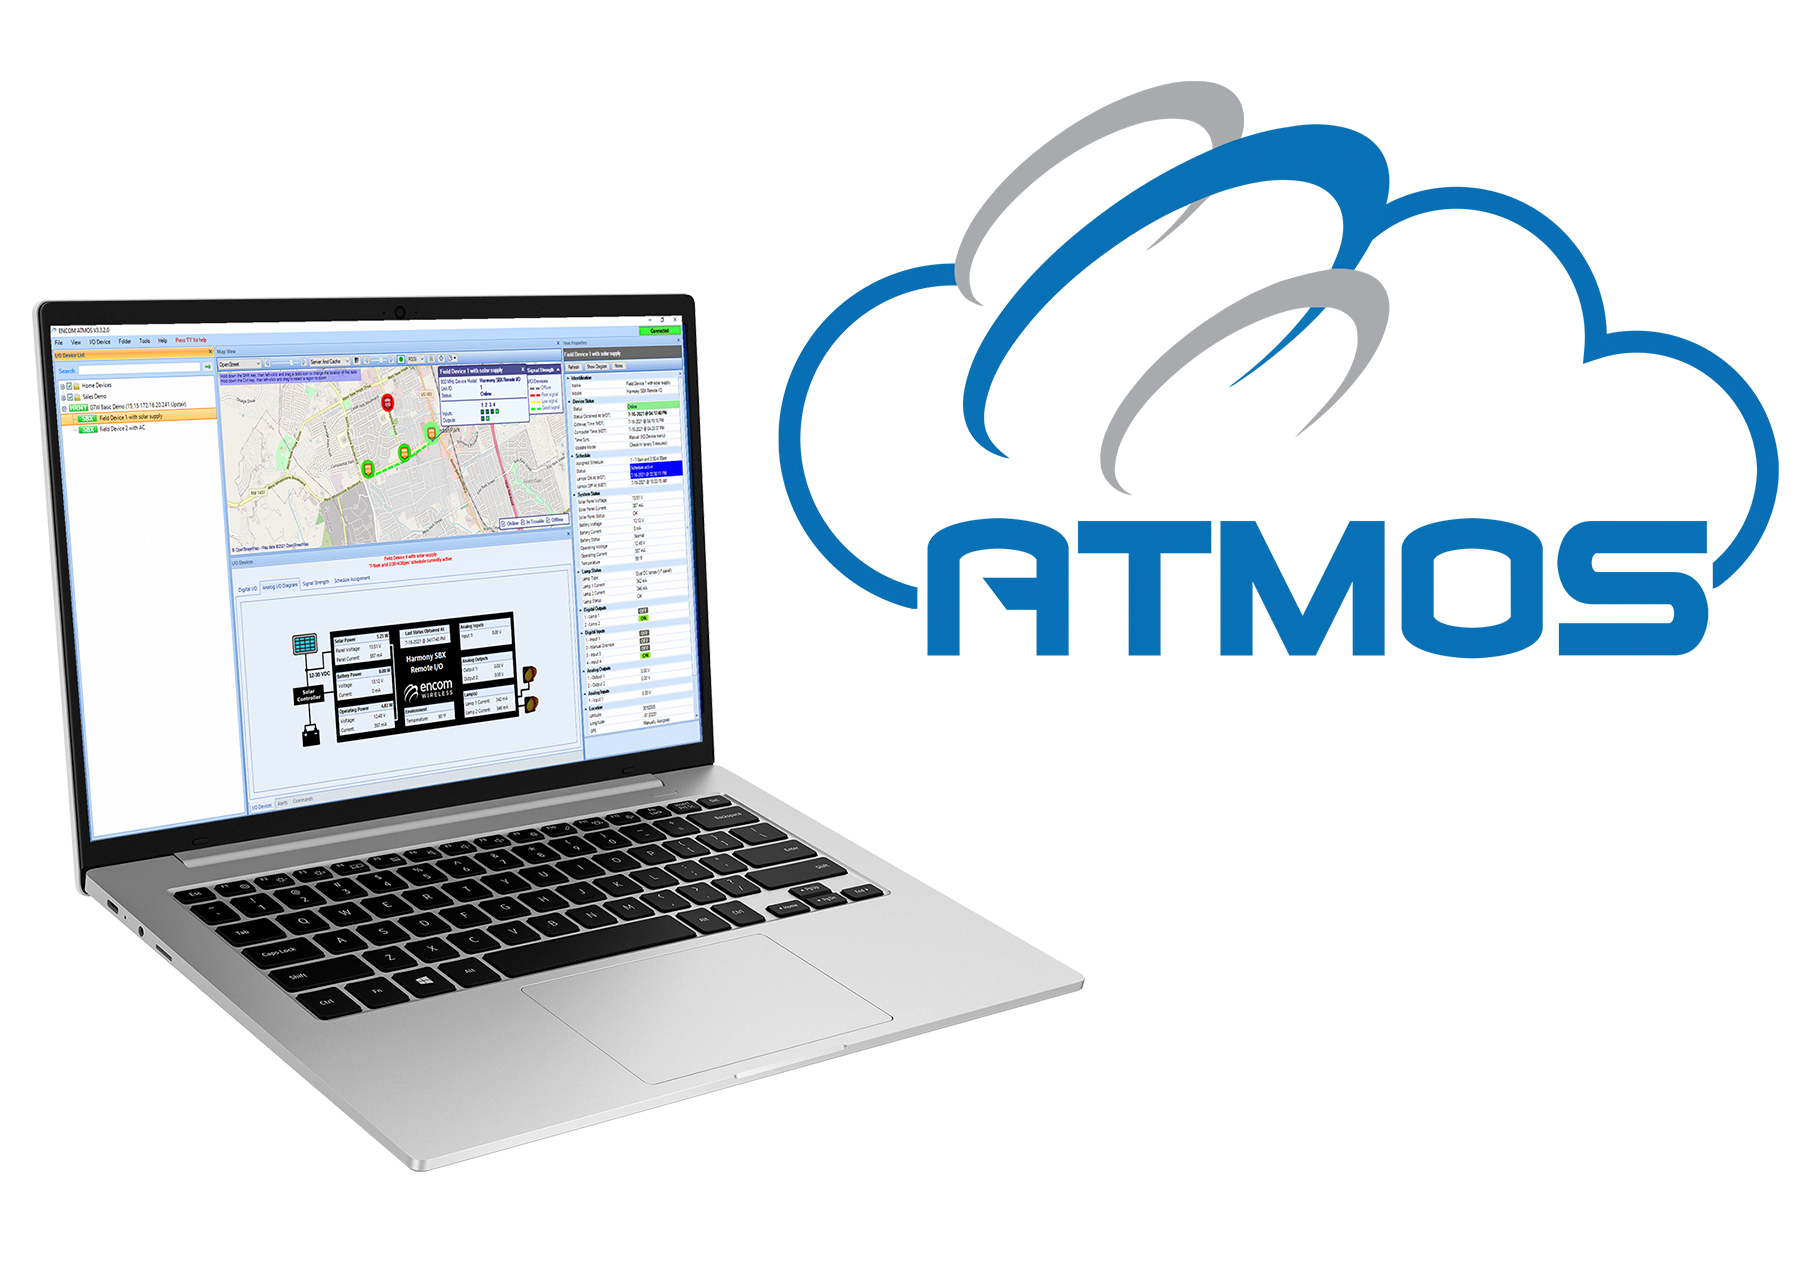 laptop-with-atmos-in-perspective-plus-logo